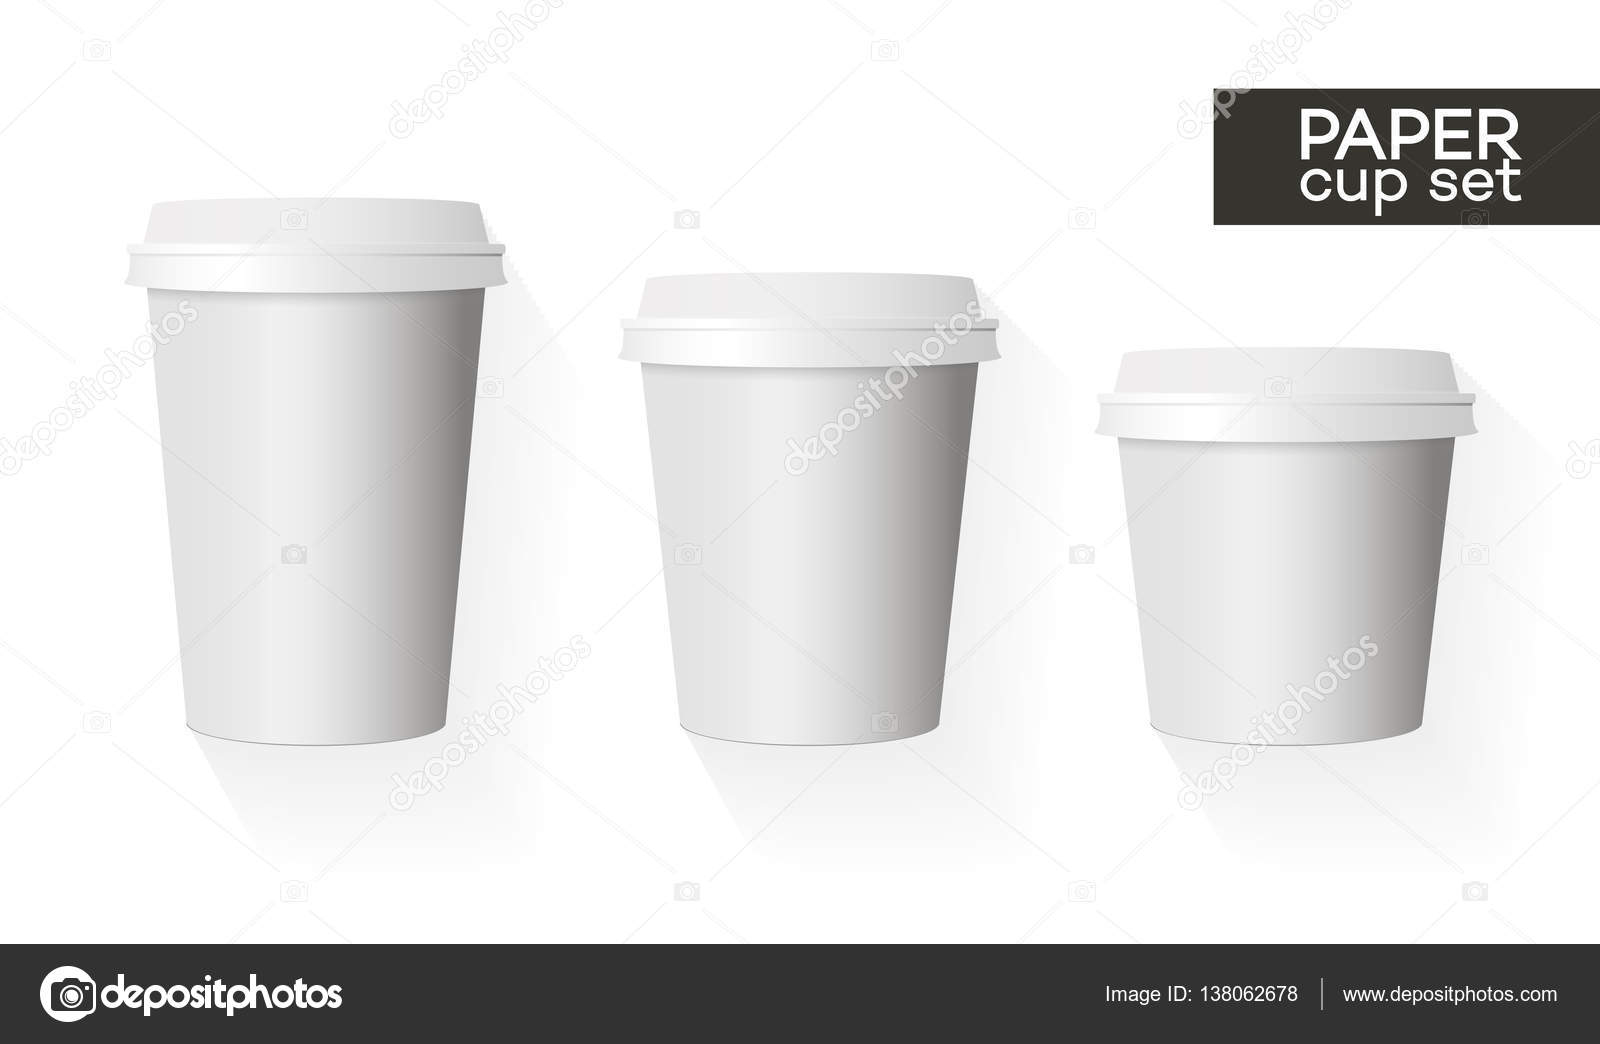 coffee paper cup template set white color and shadow isolated on